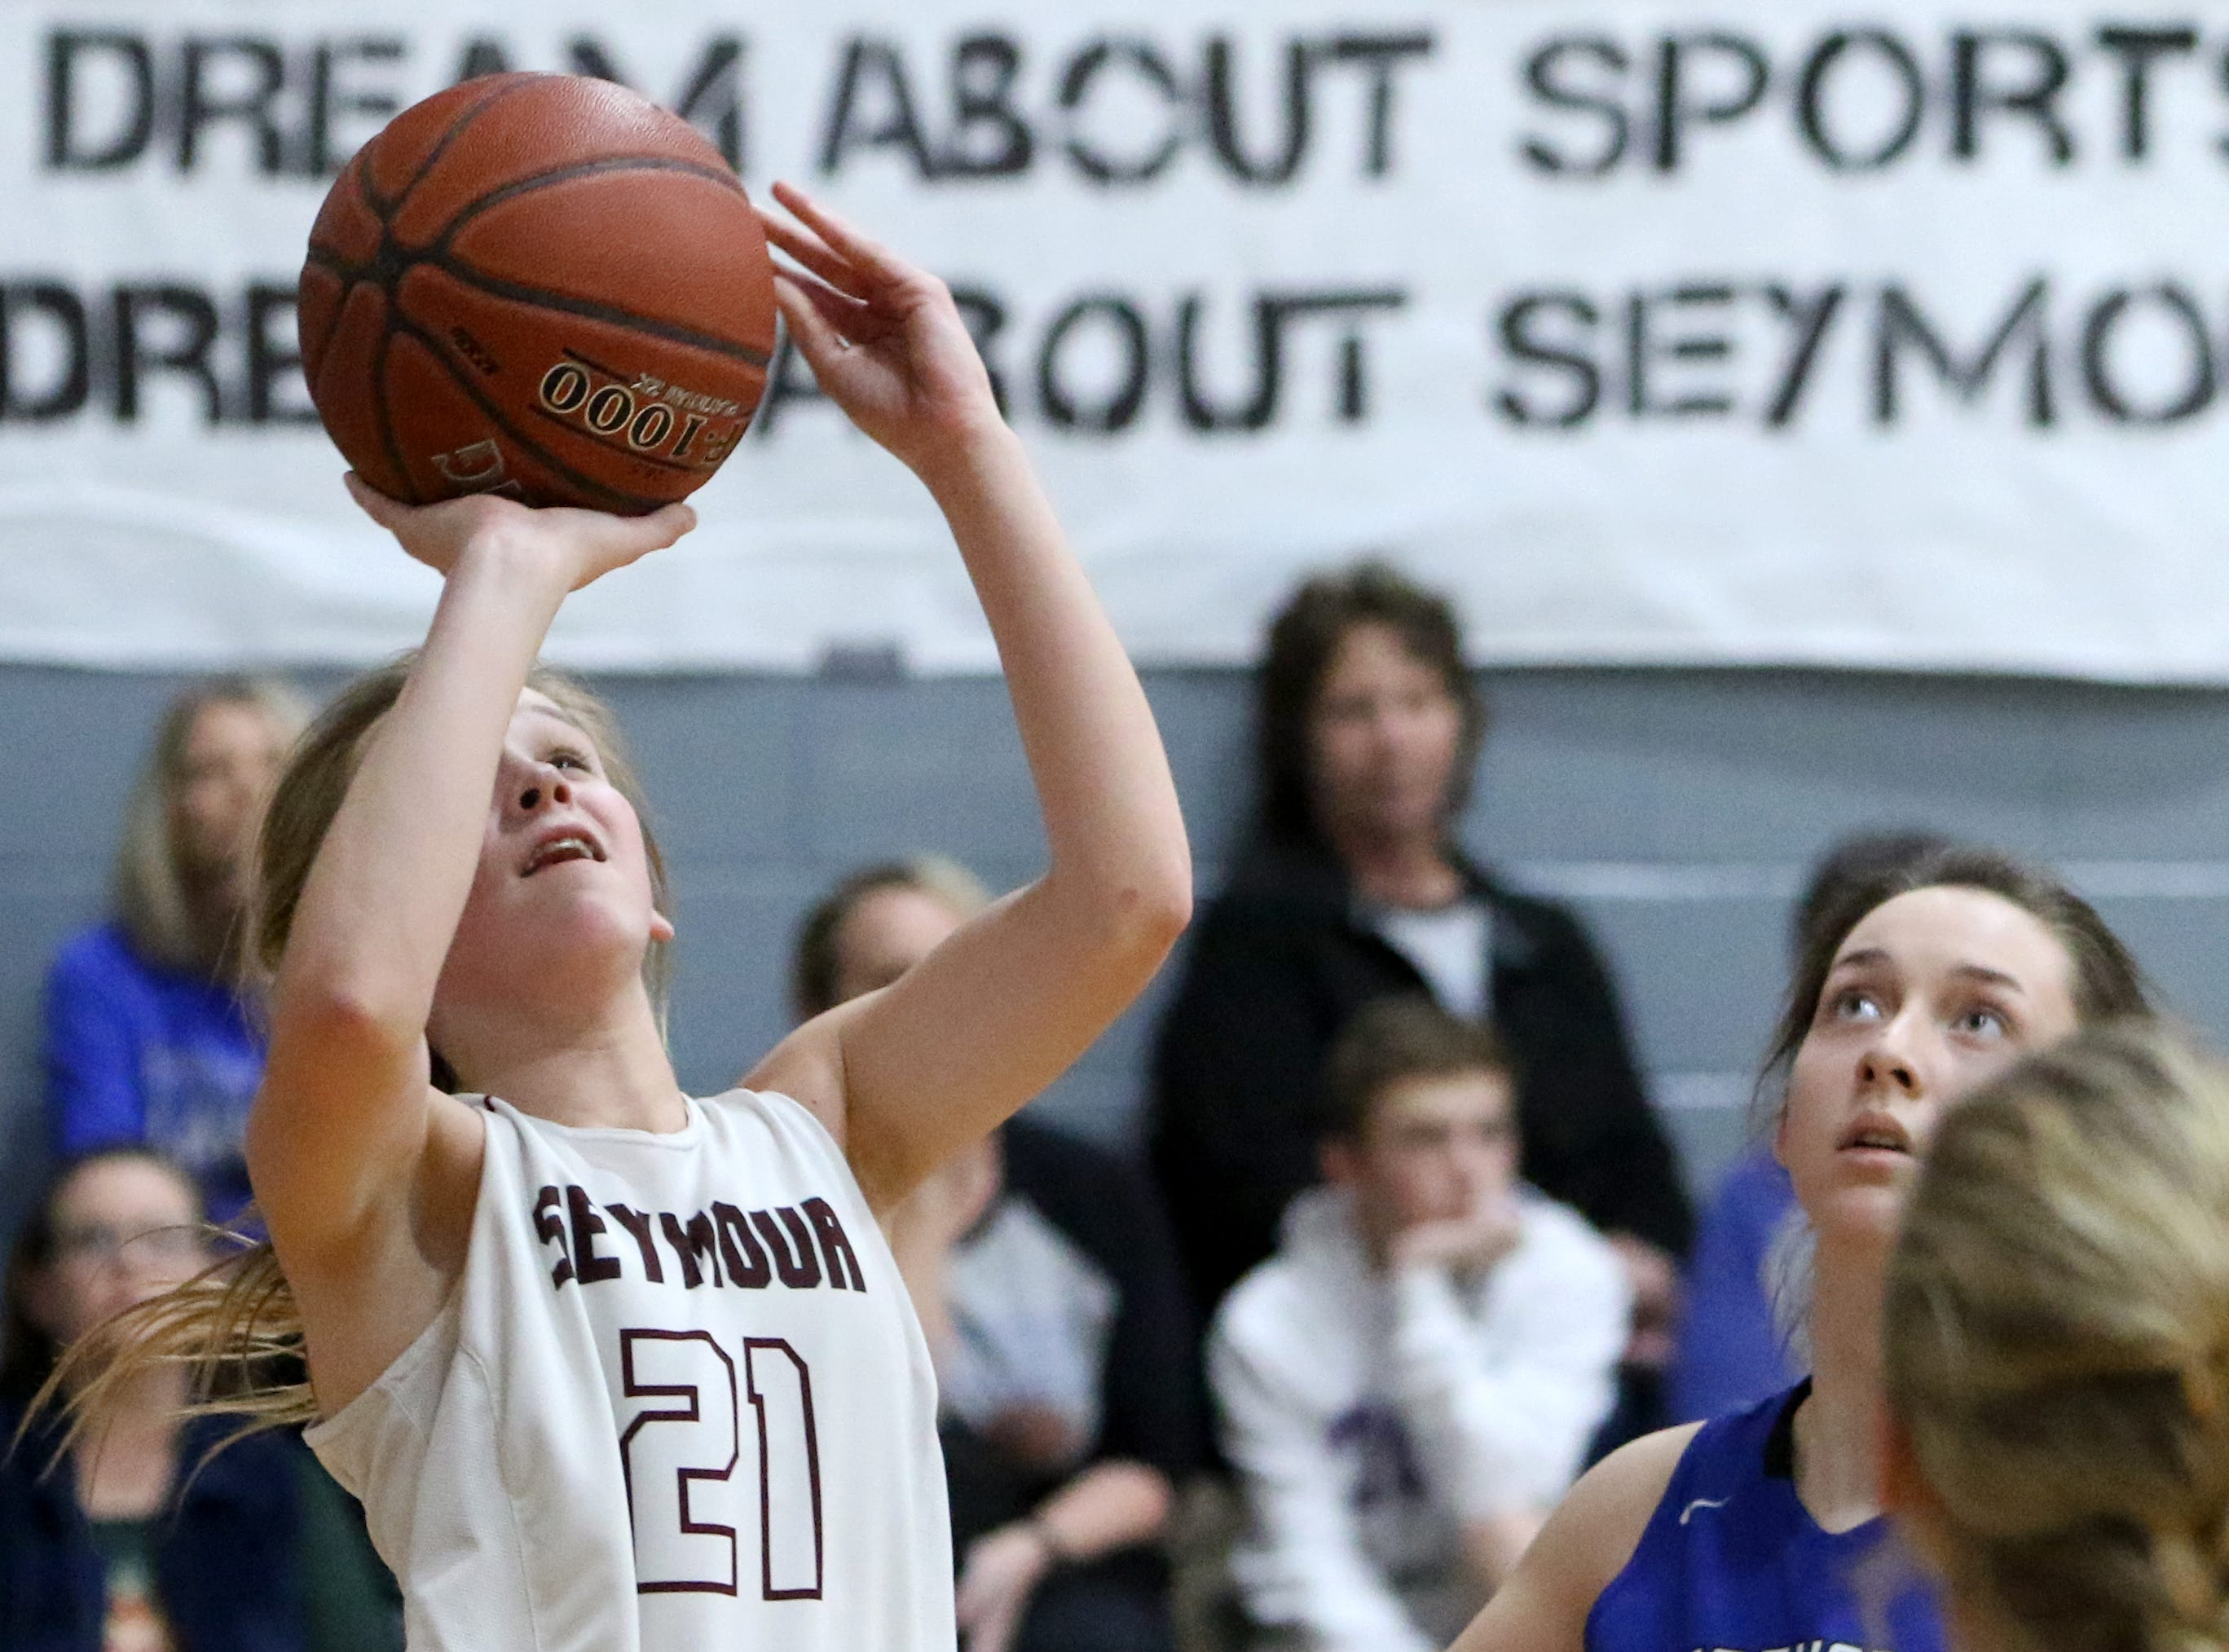 Seymour's Kennedy Stroebel shoots in the game against Windthorst Tuesday, Jan.8, 2019, in Seymour.